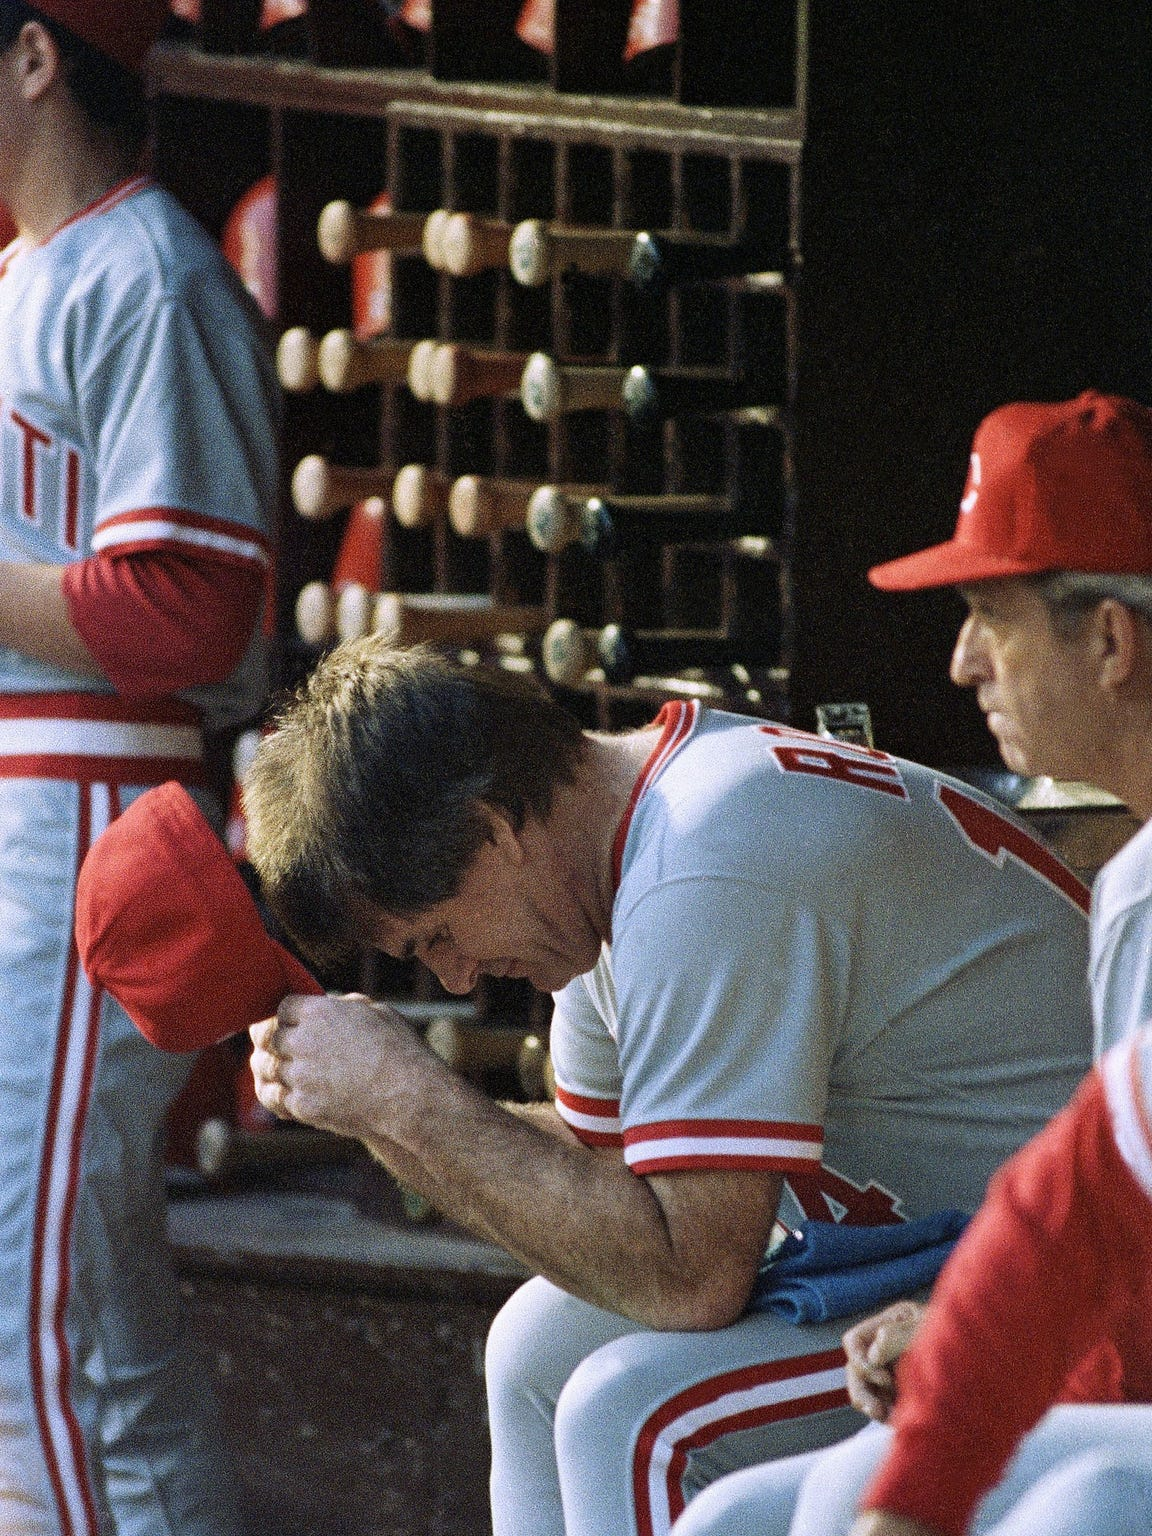 Then-Cincinnati Reds manager Pete Rose in the dugout